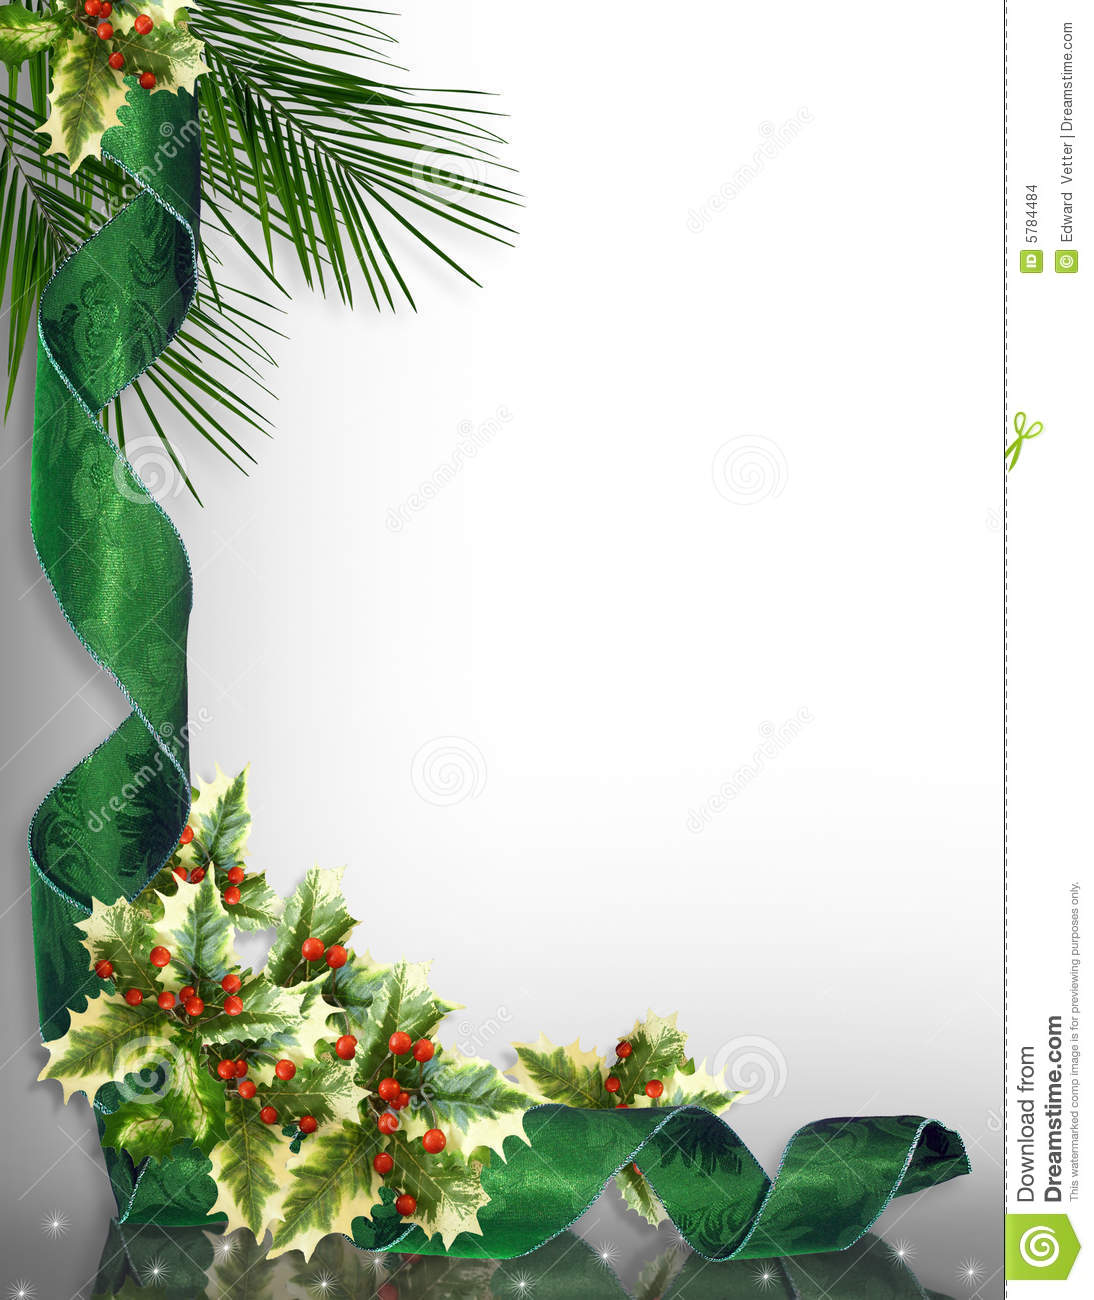 Christmas Border Corner Design Green Stock Illustration